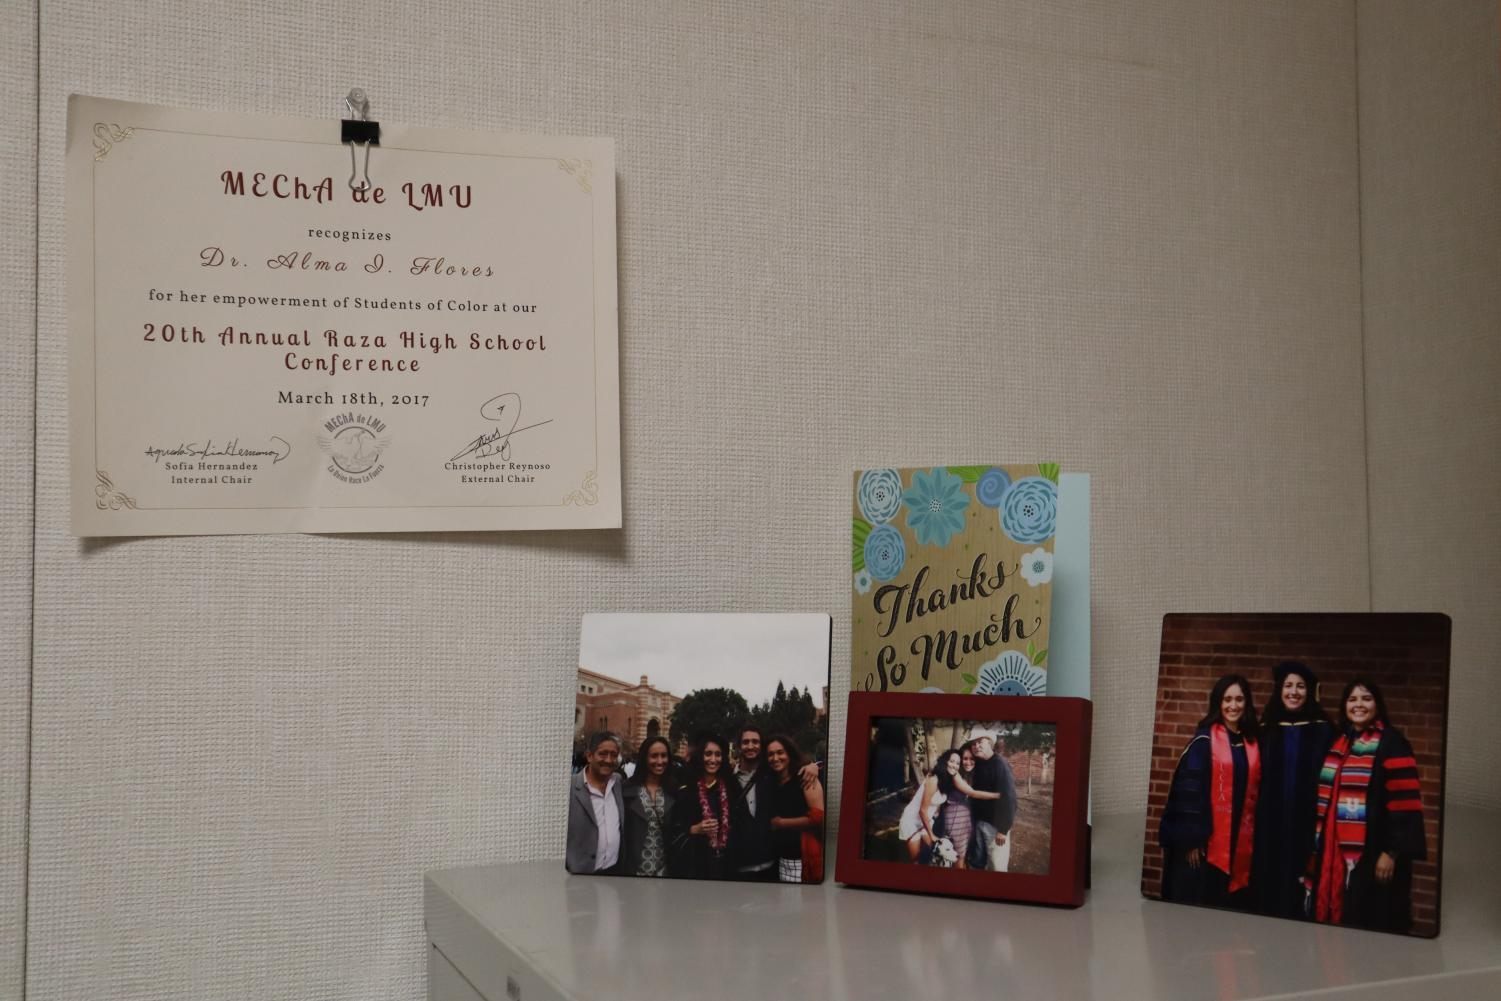 Sacramento State's education assistant professor Alma Flores hangs an award from Loyola Marymount University's Movimiento Estudiantil Chicanx de Aztlán that recognizes her for her empowerment of students of color. Flores said that not only does Sac State need to hire more faculty of color, but the retention of that faculty is just as important.